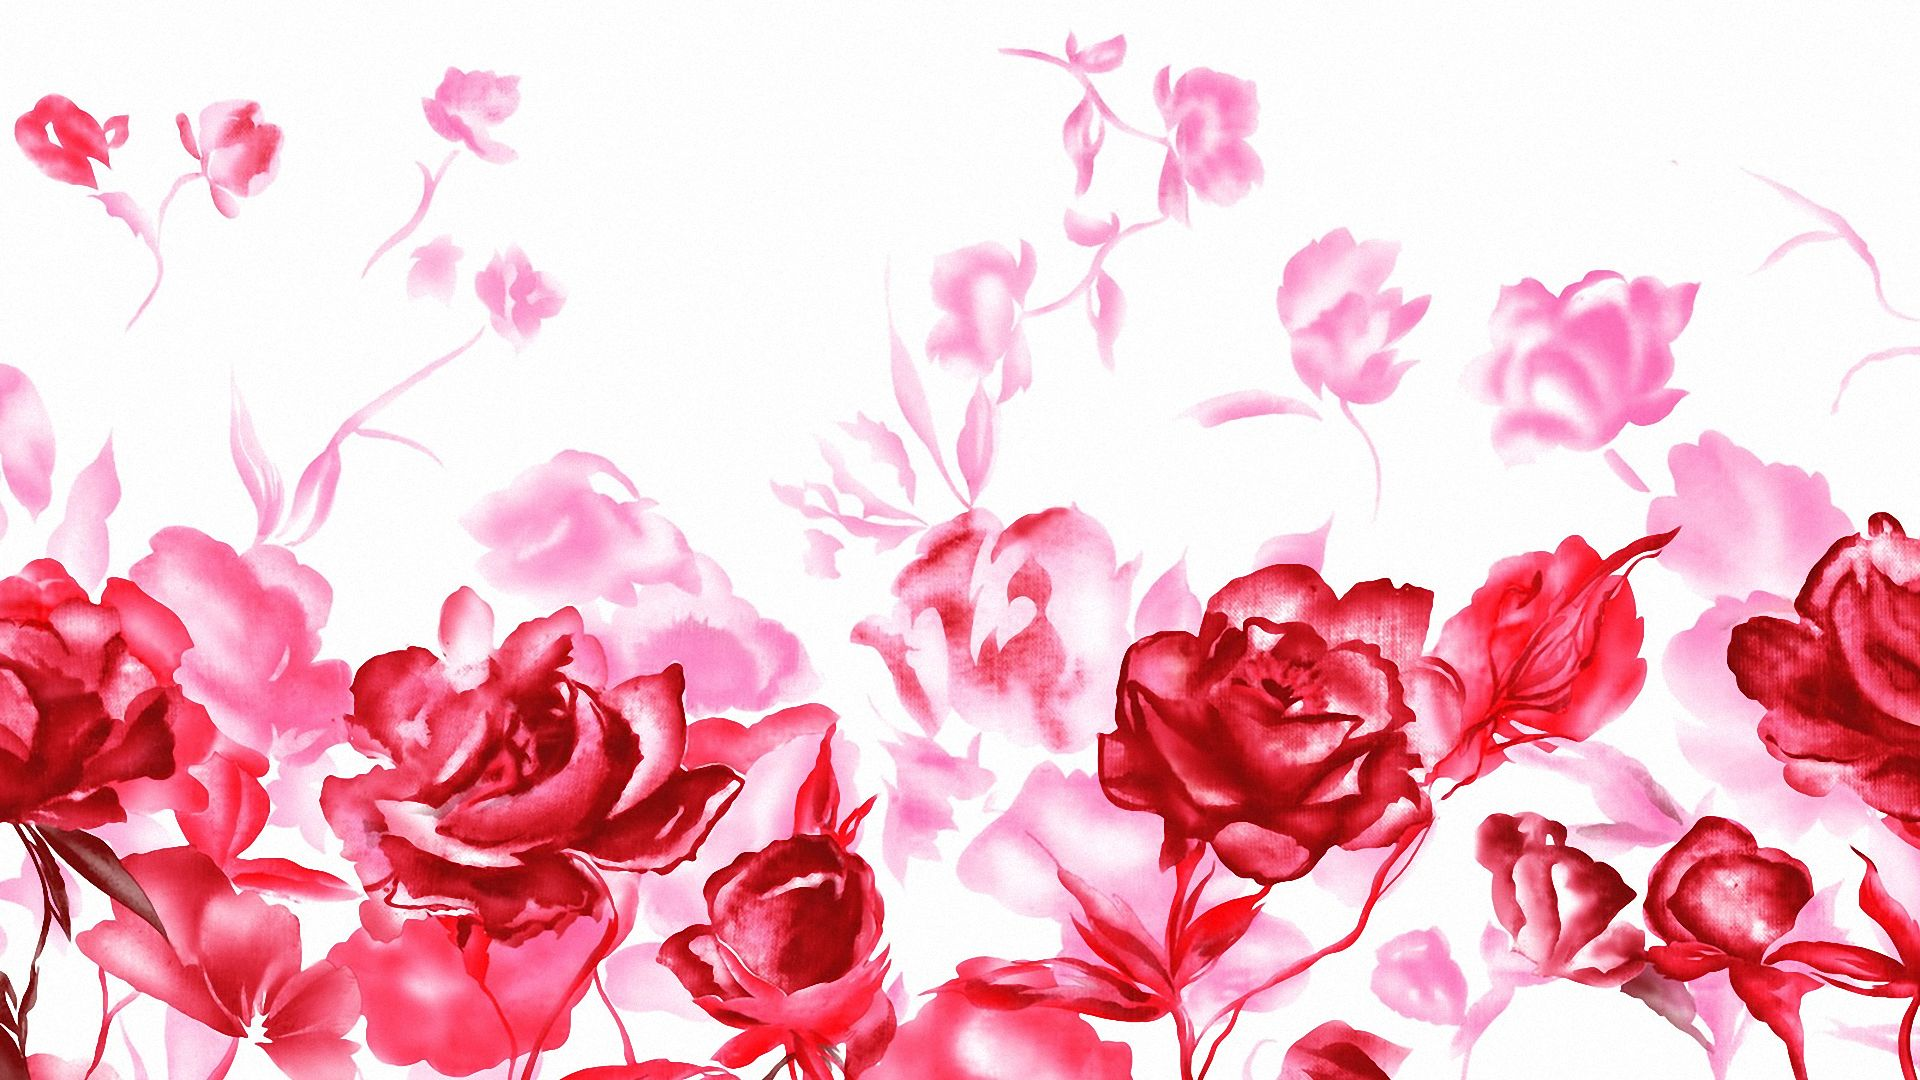 Valentine Day Wallpaper 1920x1080 Wallpapers 1920x1080 Wallpapers 1920x1080